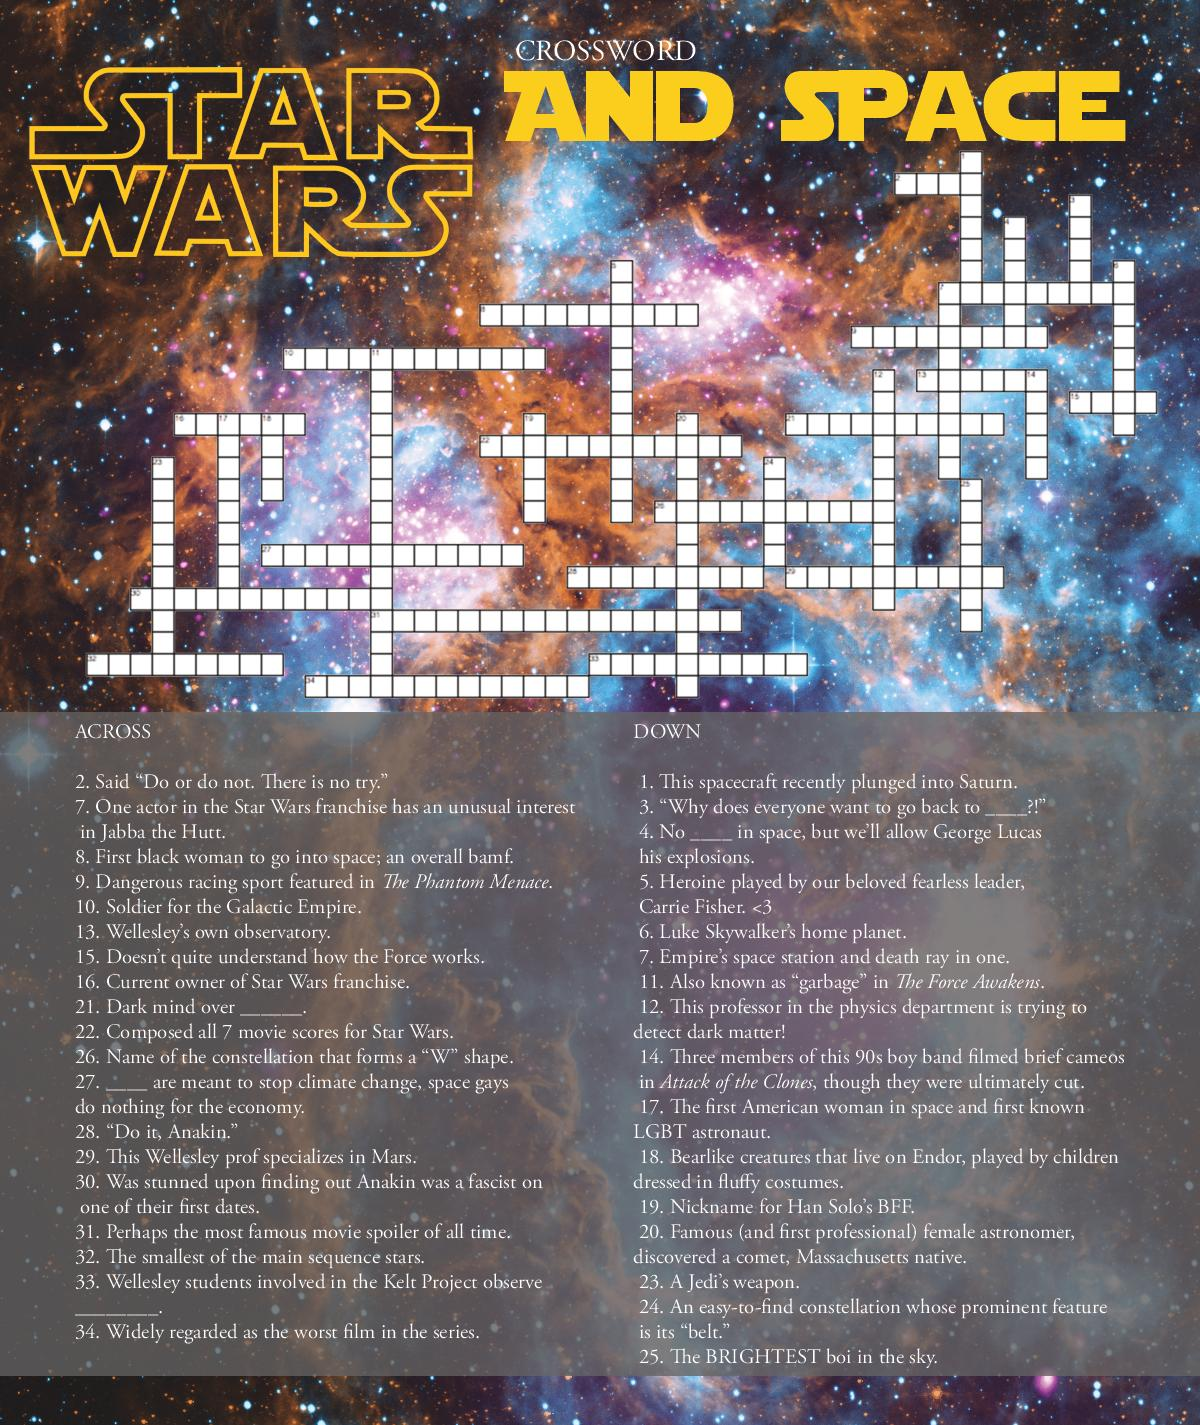 December 2017: Star Wars and Space